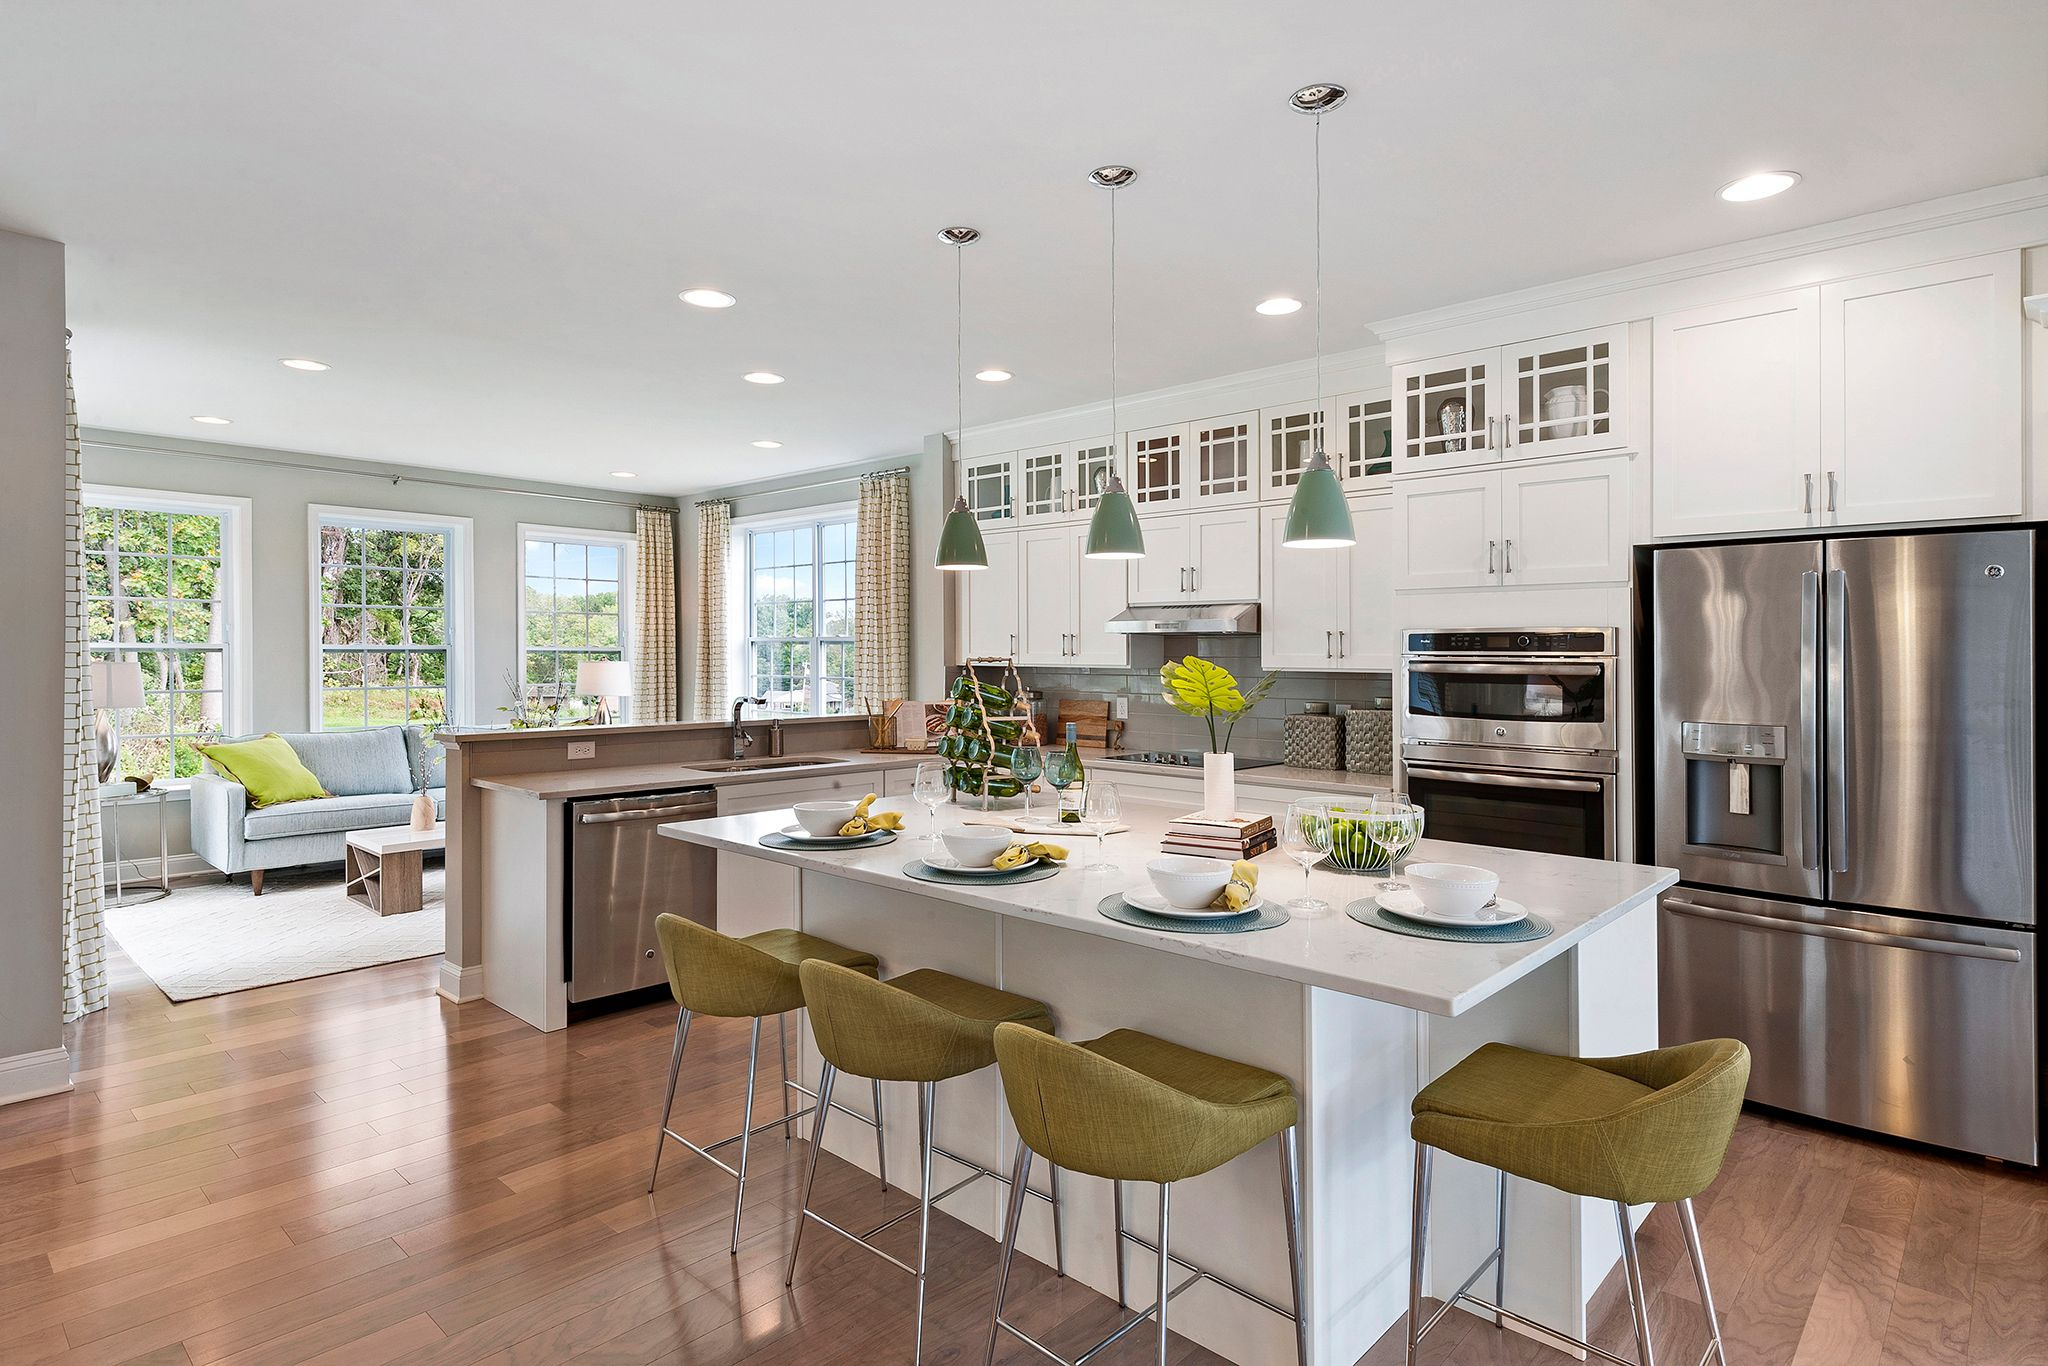 'Westhampton' by Blenheim Homes, L.P.-Philadelphia, PA in Wilmington-Newark